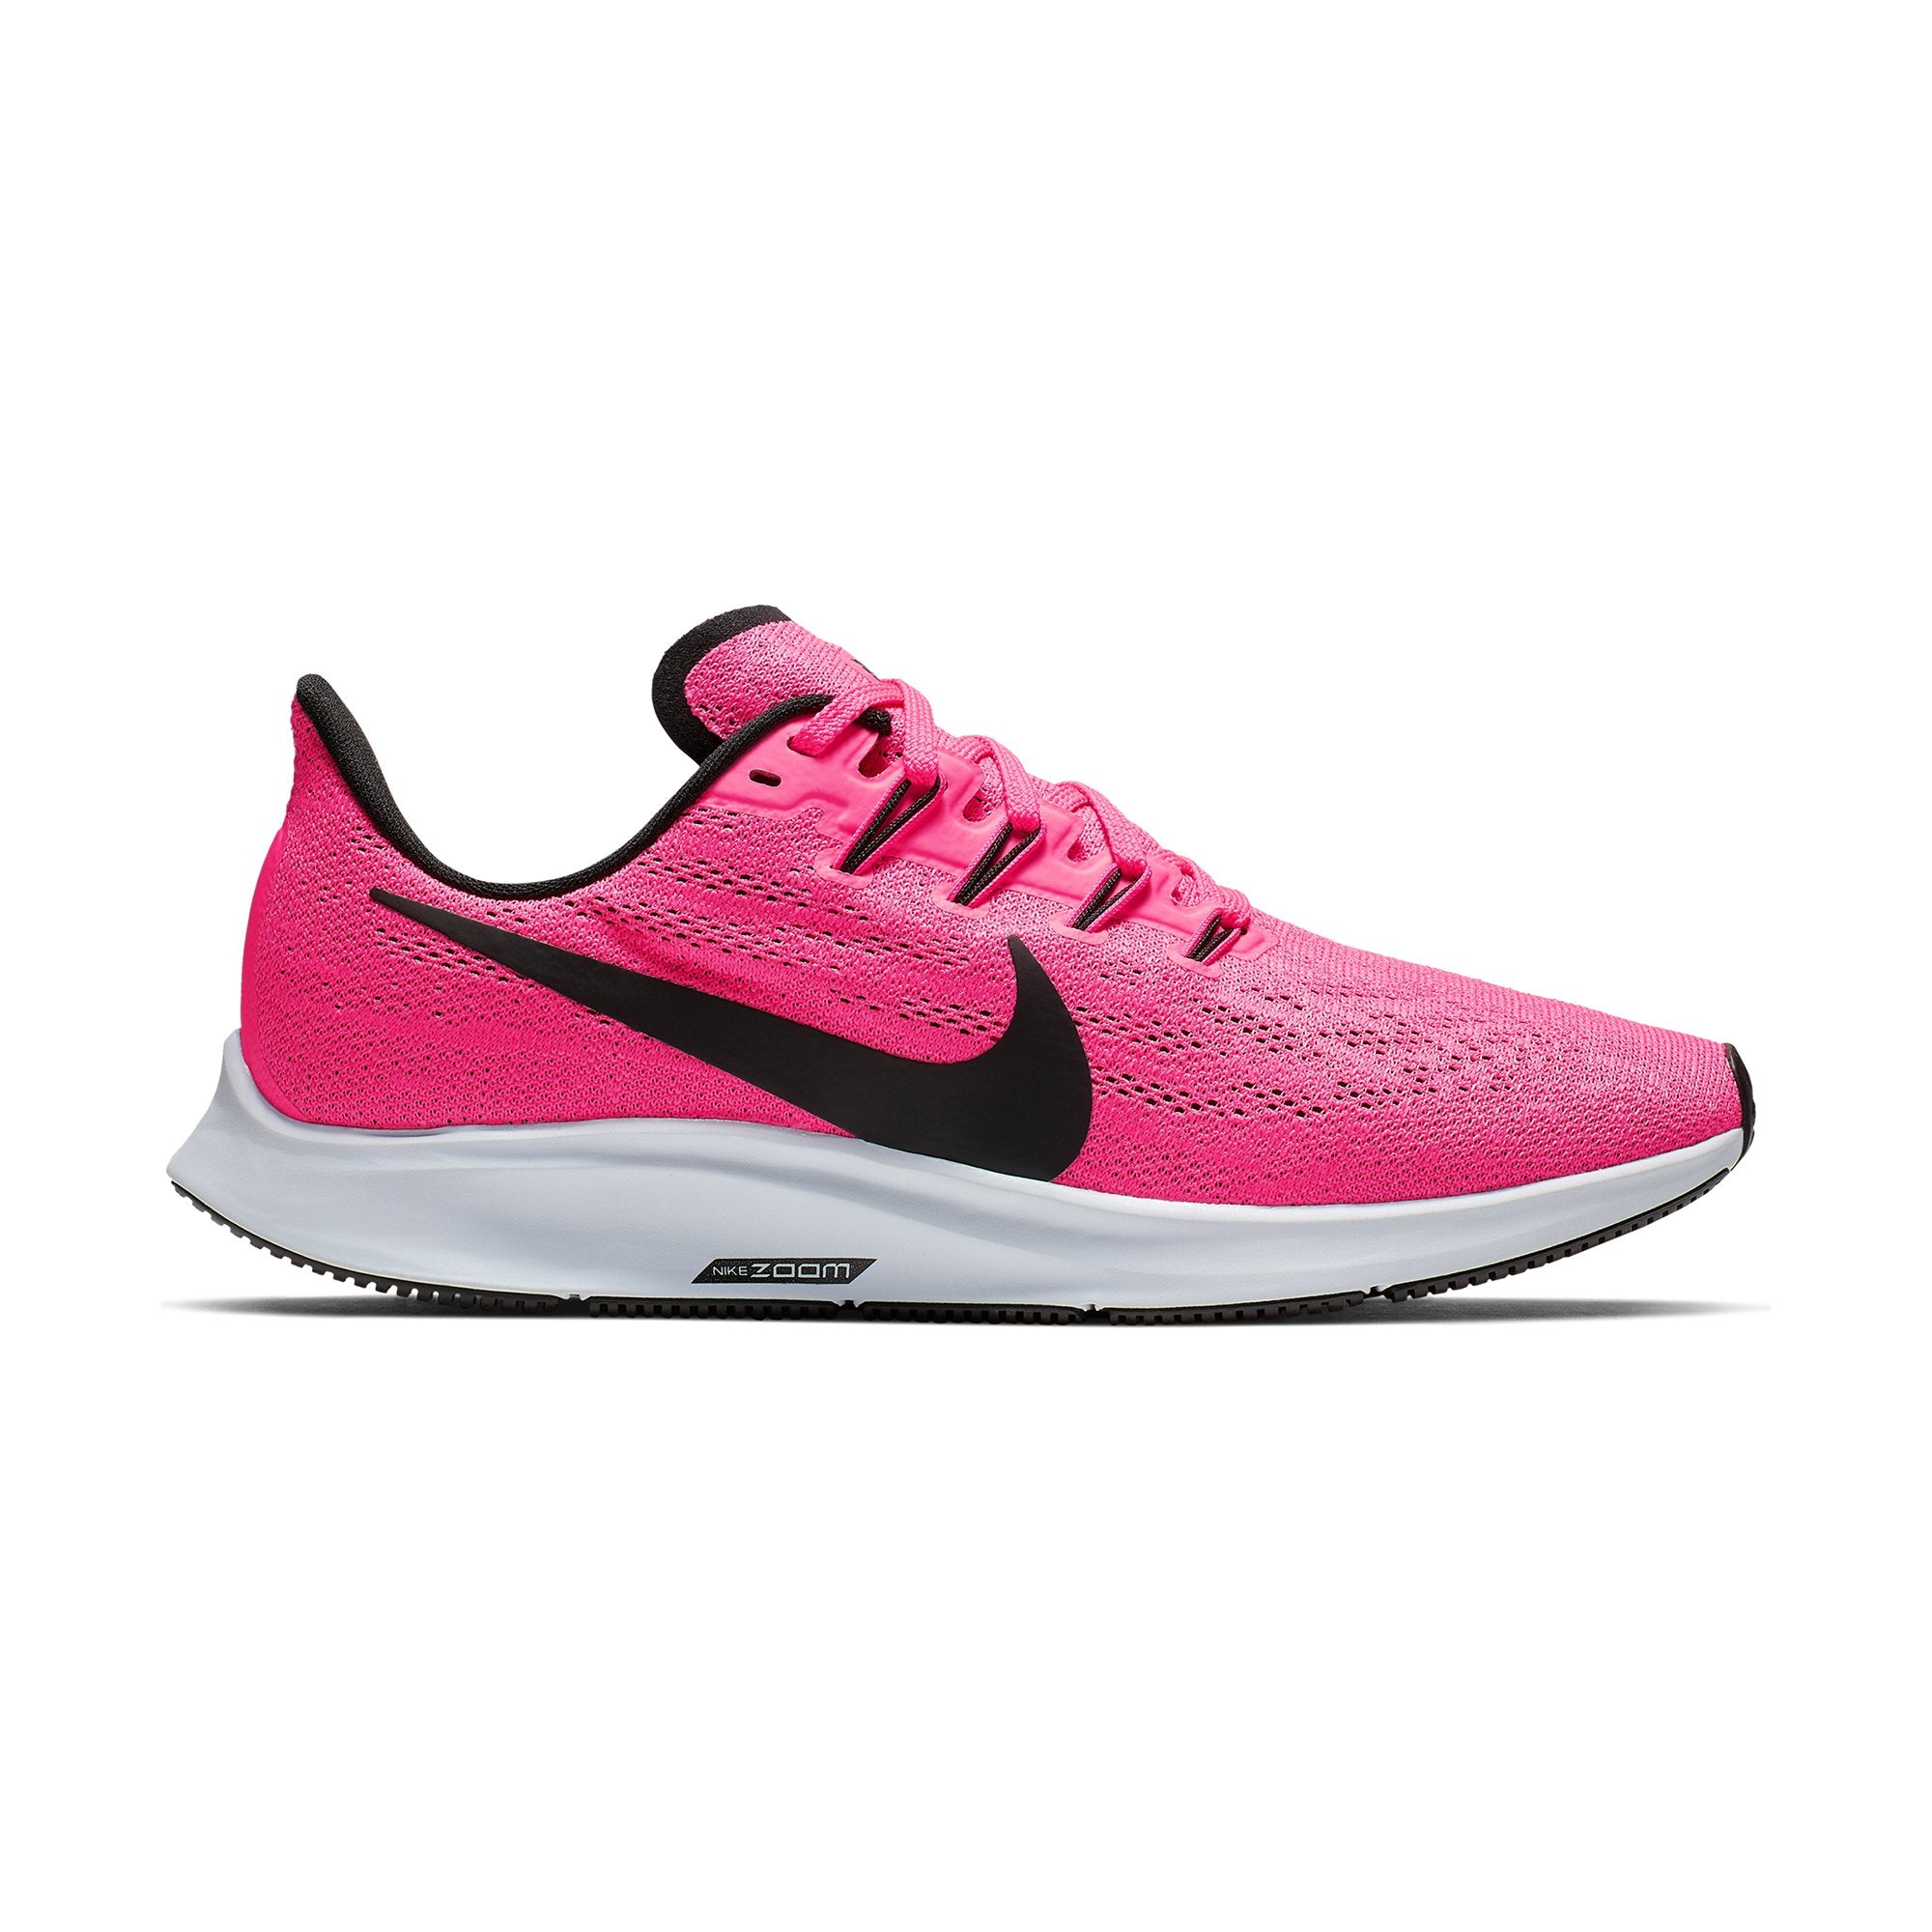 size 40 08263 94d0a Buy Nike Women Air Zoom Pegasus 36 Running Shoes Online in Singapore |  Royal Sporting House